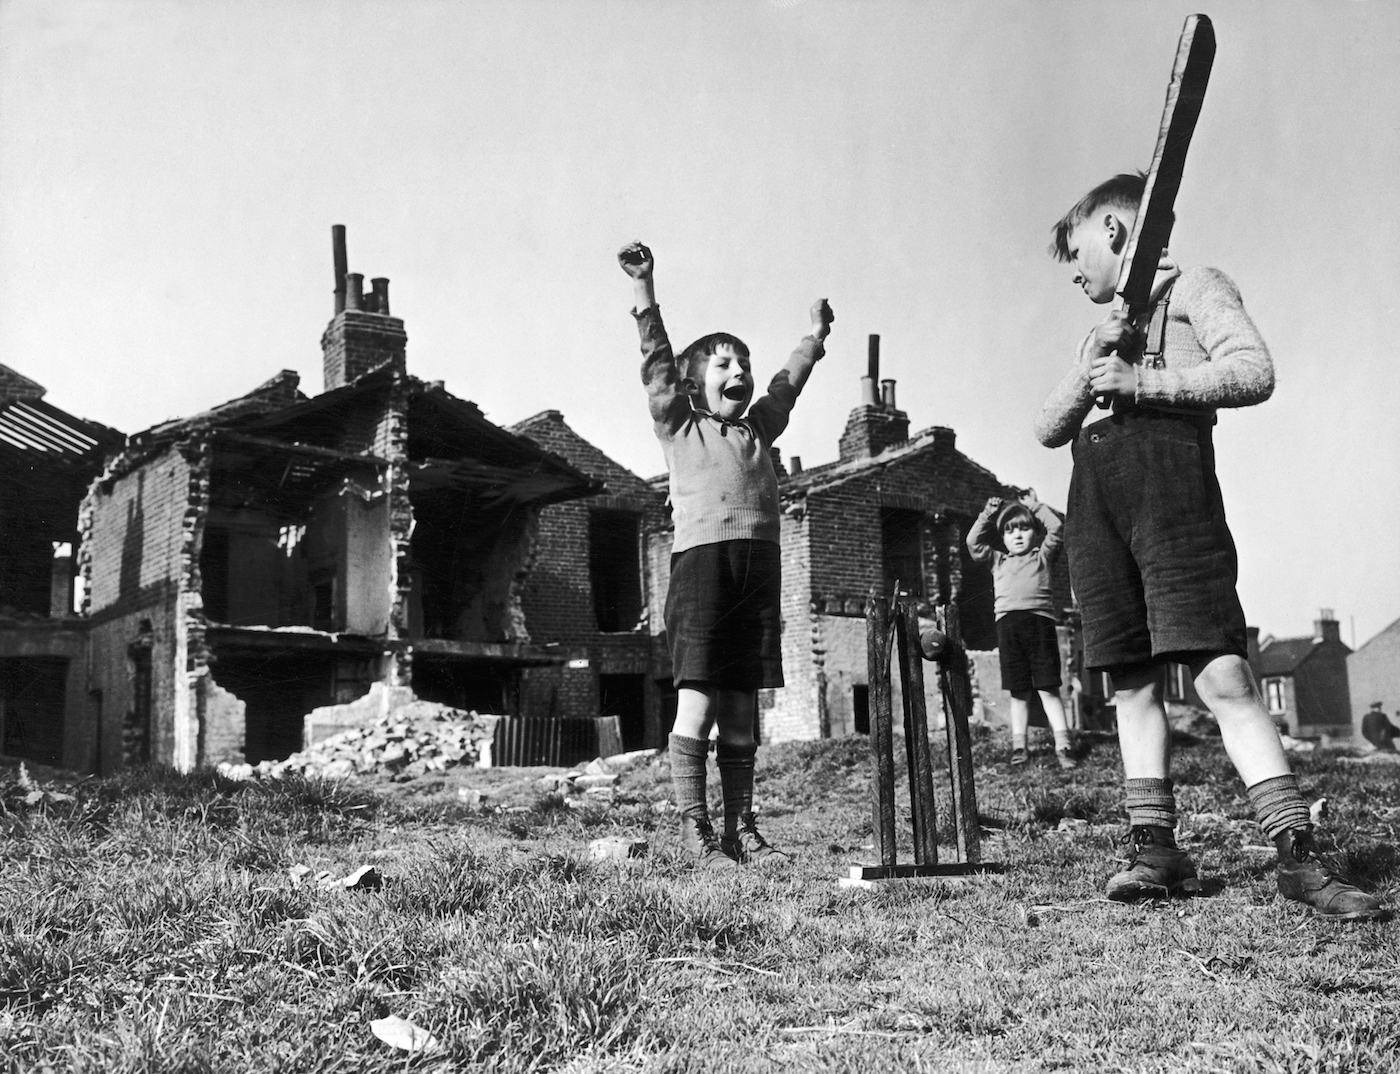 Wicketkeeper Billie Hudd celebrates the wicket of his older brother John, as four-year-old Freddie Hudd fields, among the ruins of their house in Canning Town near London, blitzed by the Germans in 1941